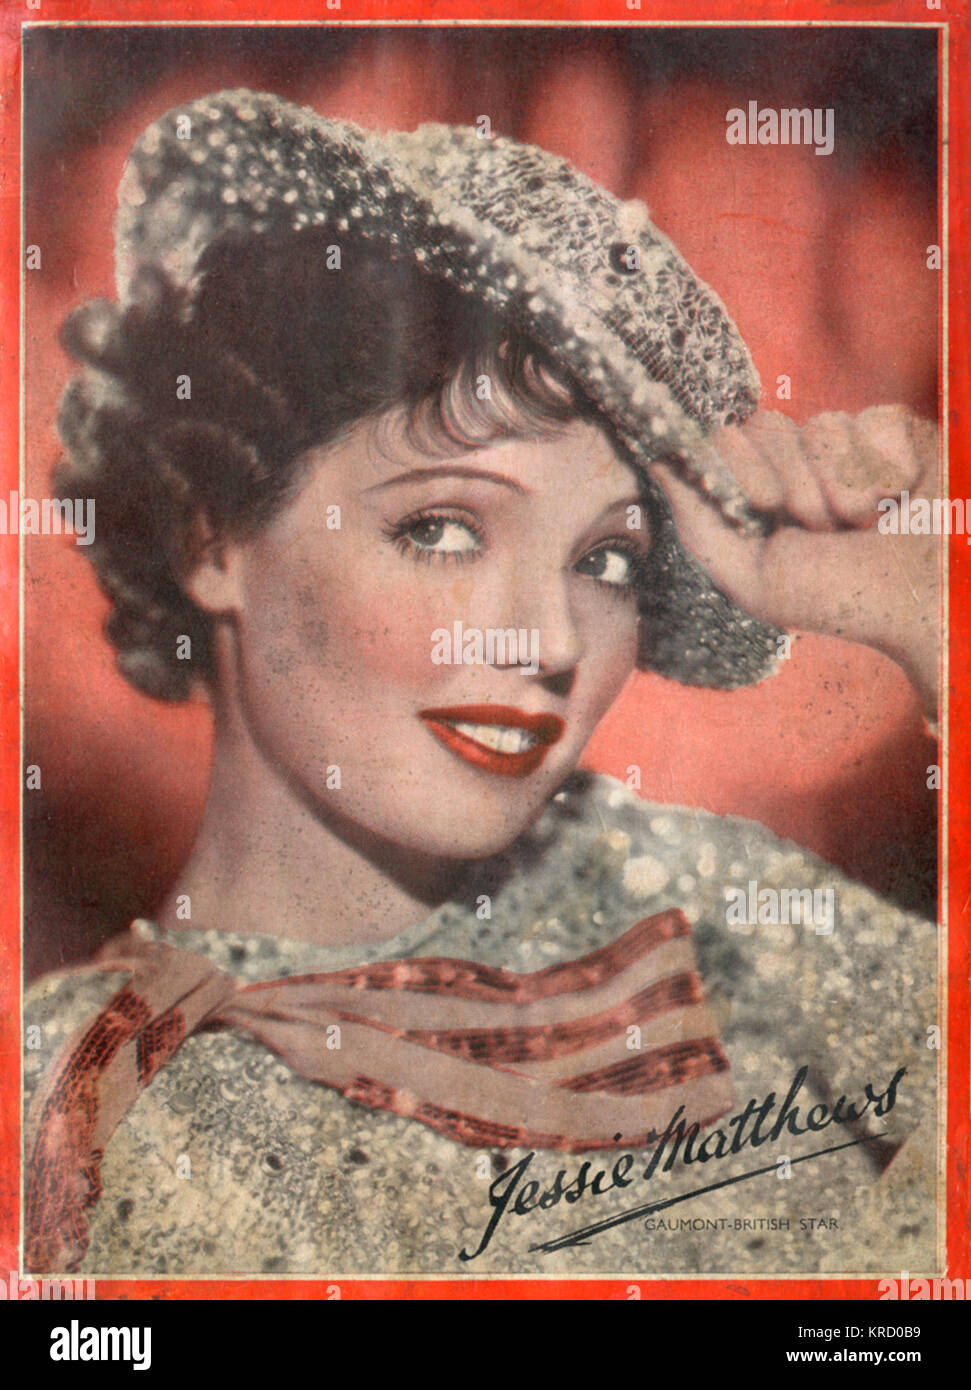 Jessie Matthews (1907-1981), British singer and dancer of stage and screen, wearing her sparkling 'Over My Shoulder' - Stock Image